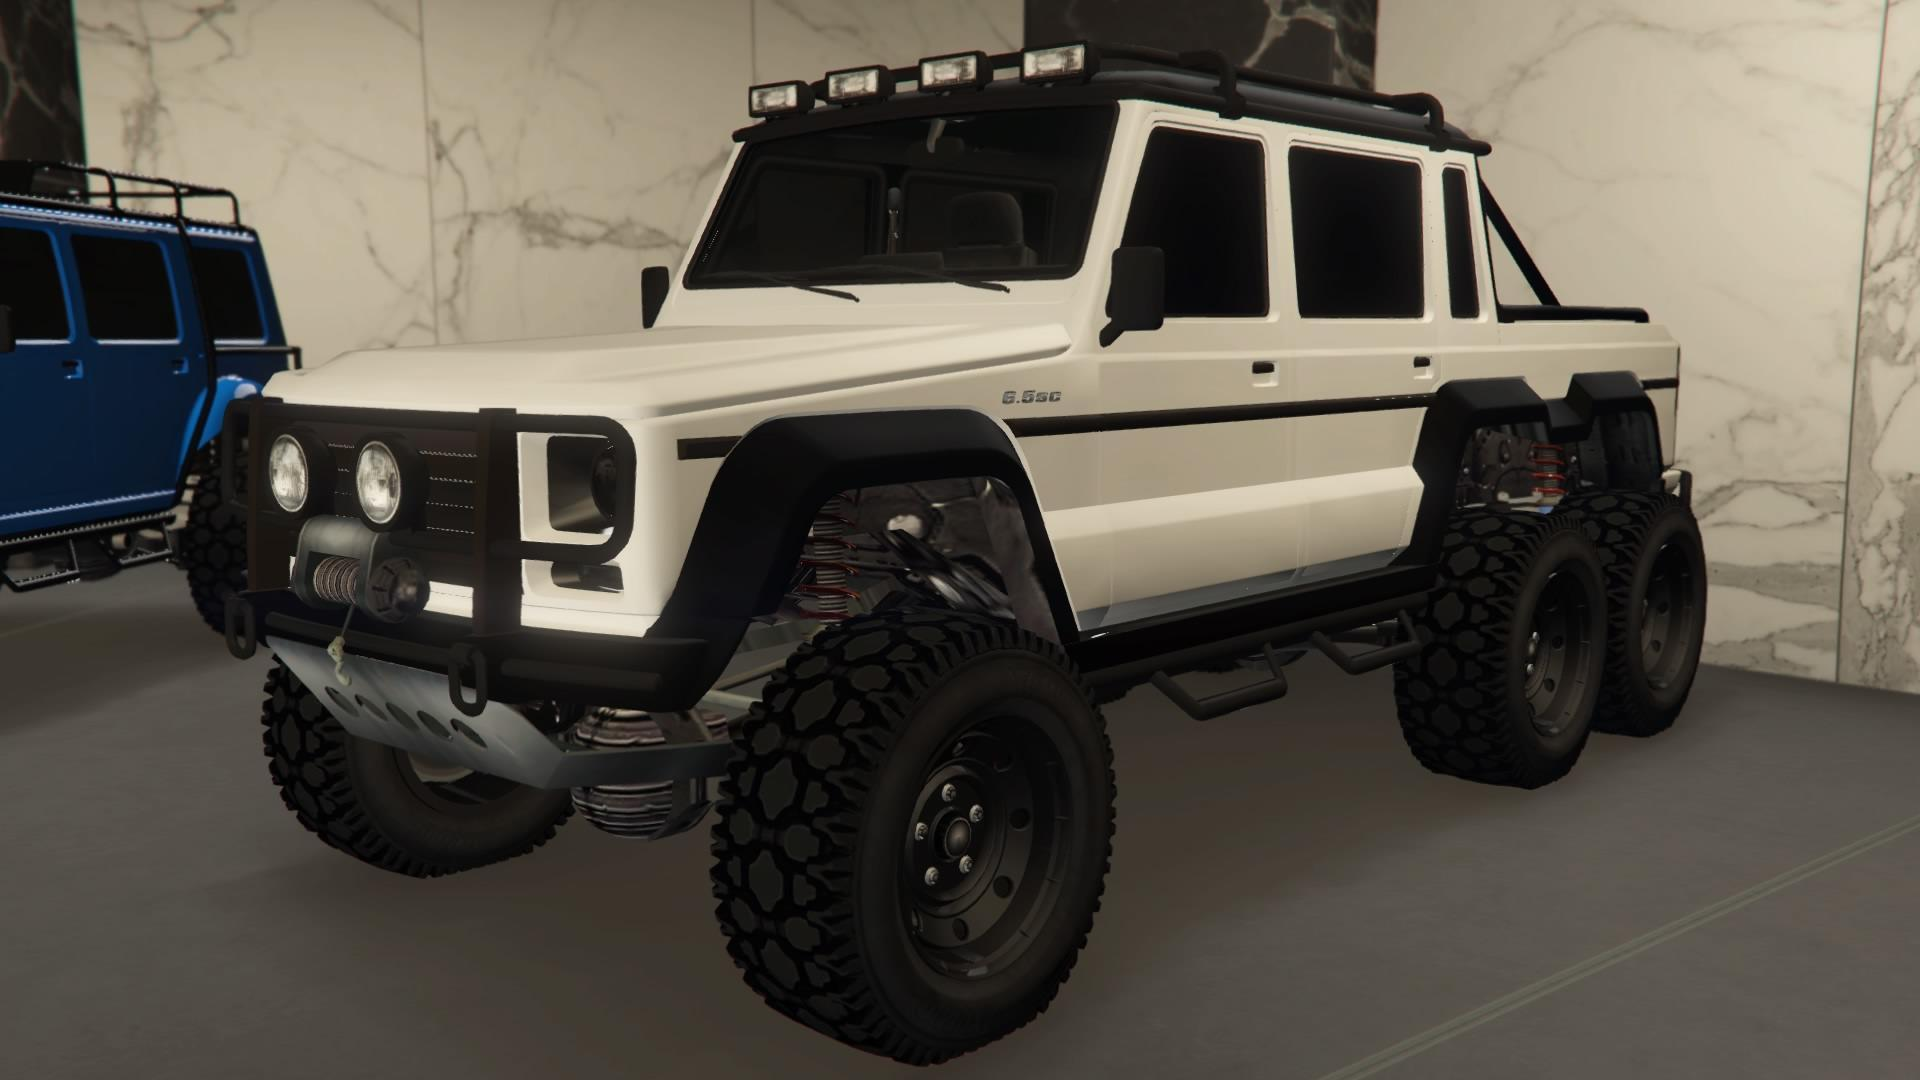 Custom Dubsta 6x6 by TylerG94